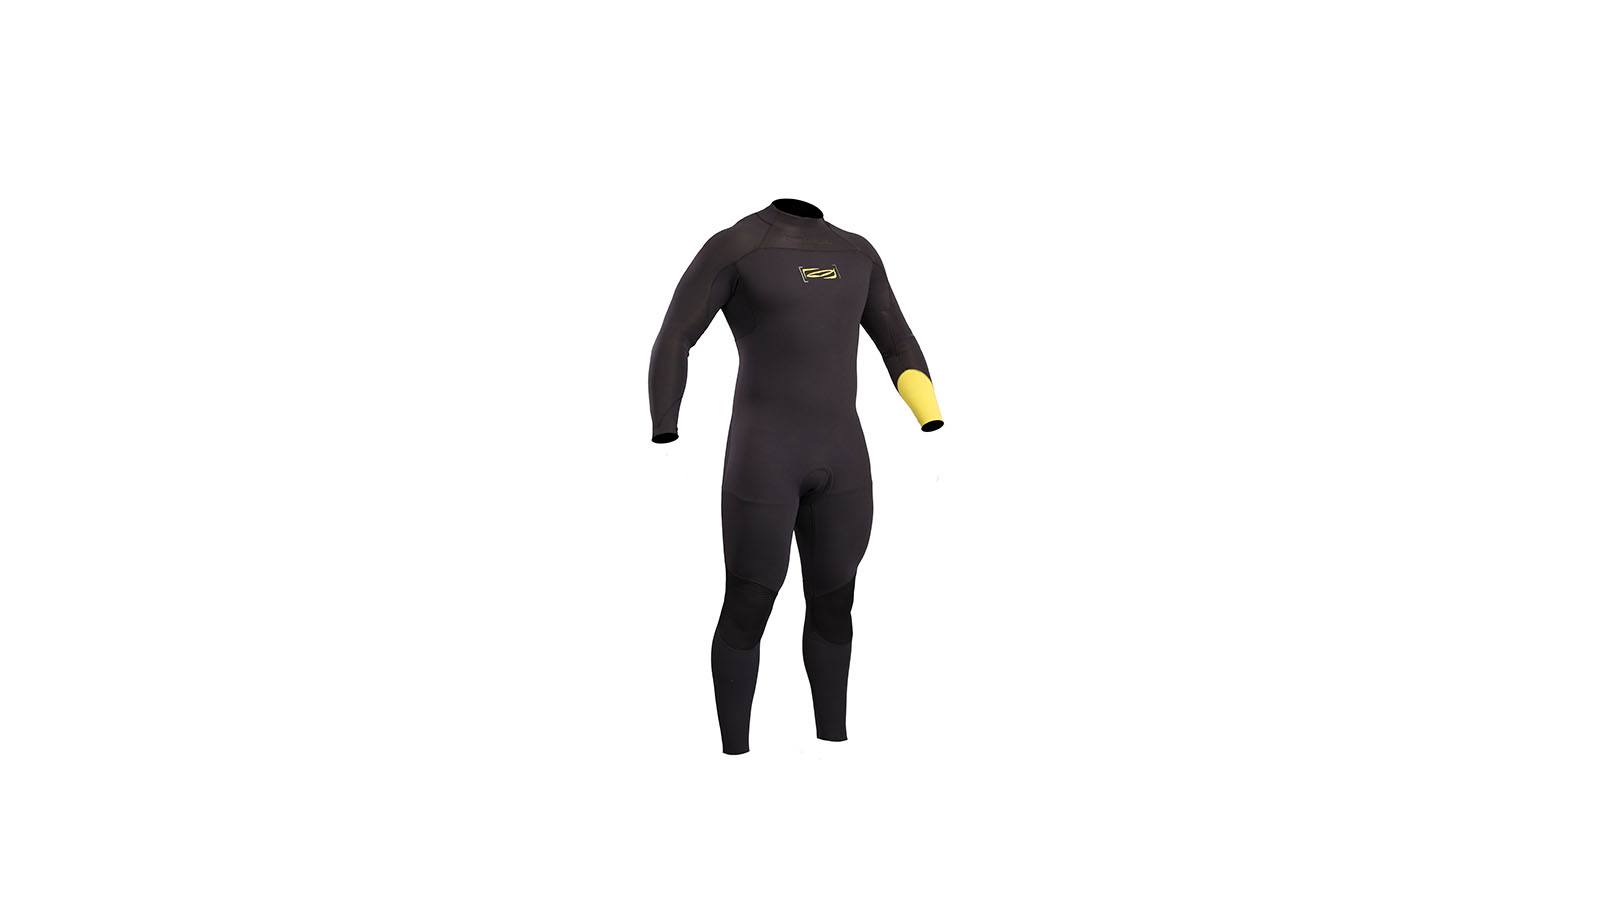 3fa902f70b Gul FW19/20 Wetsuit Preview - Boardsport SOURCE